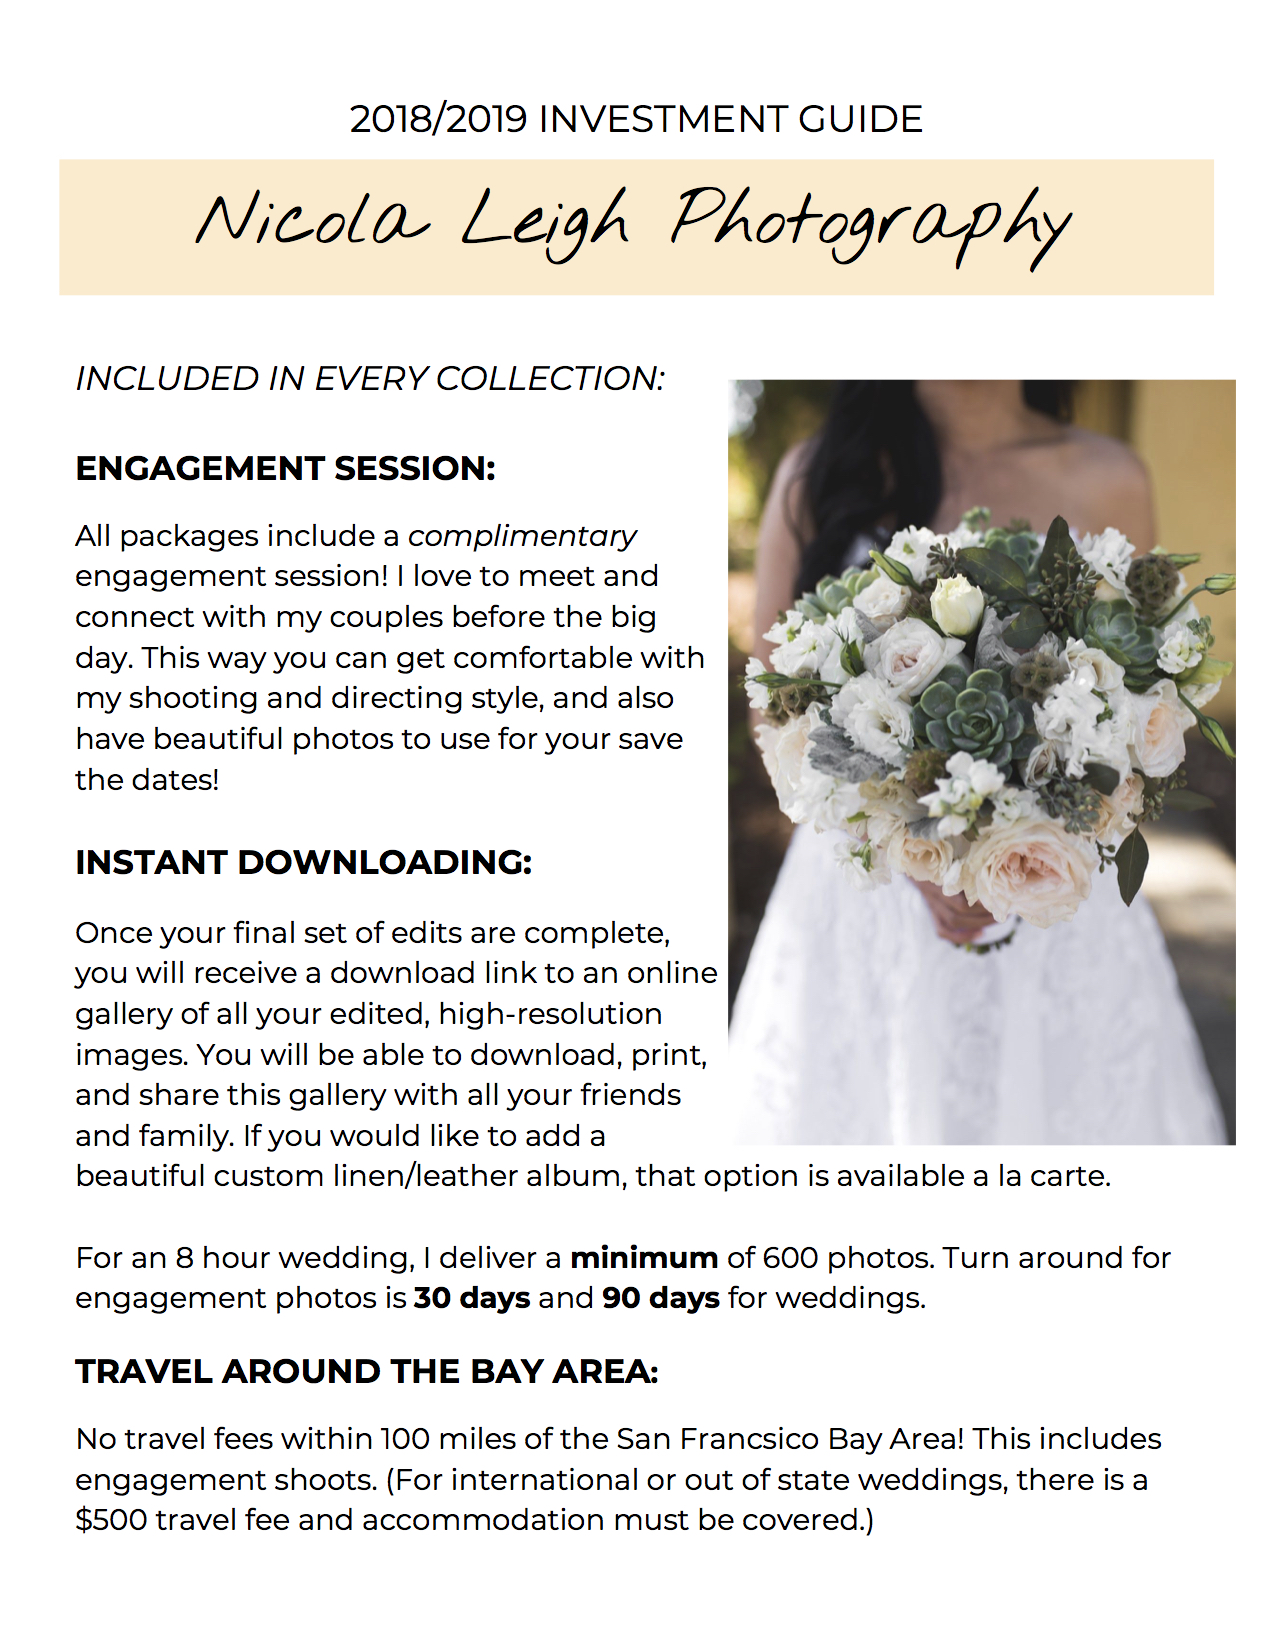 NICOLA LEIGH 2018 INVESTMENT GUIDE (1).jpg